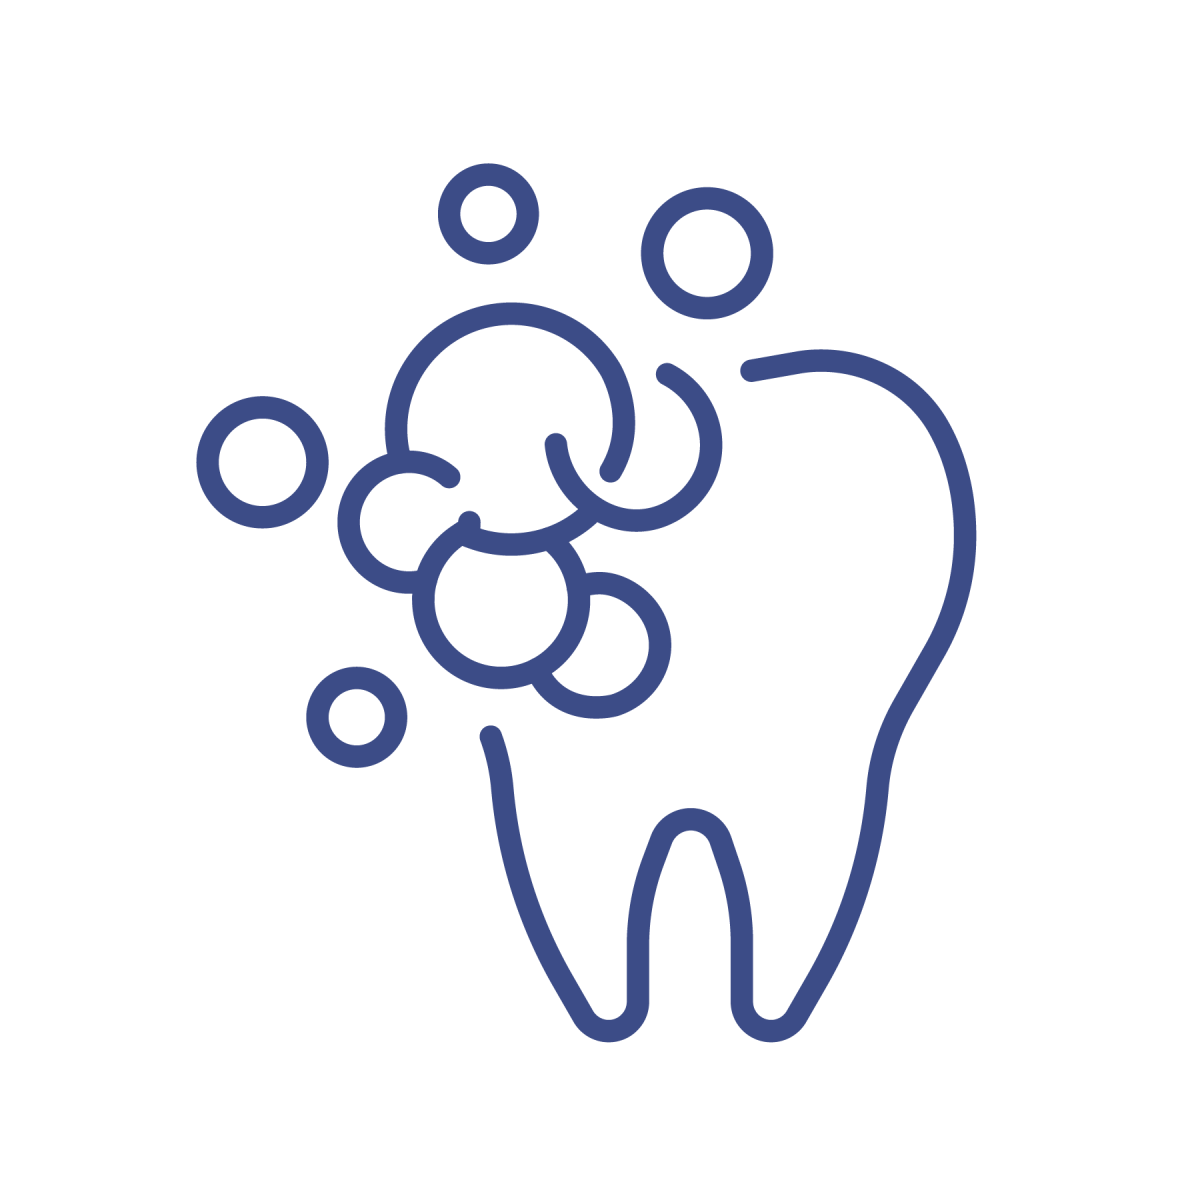 tooth icon with bubbles